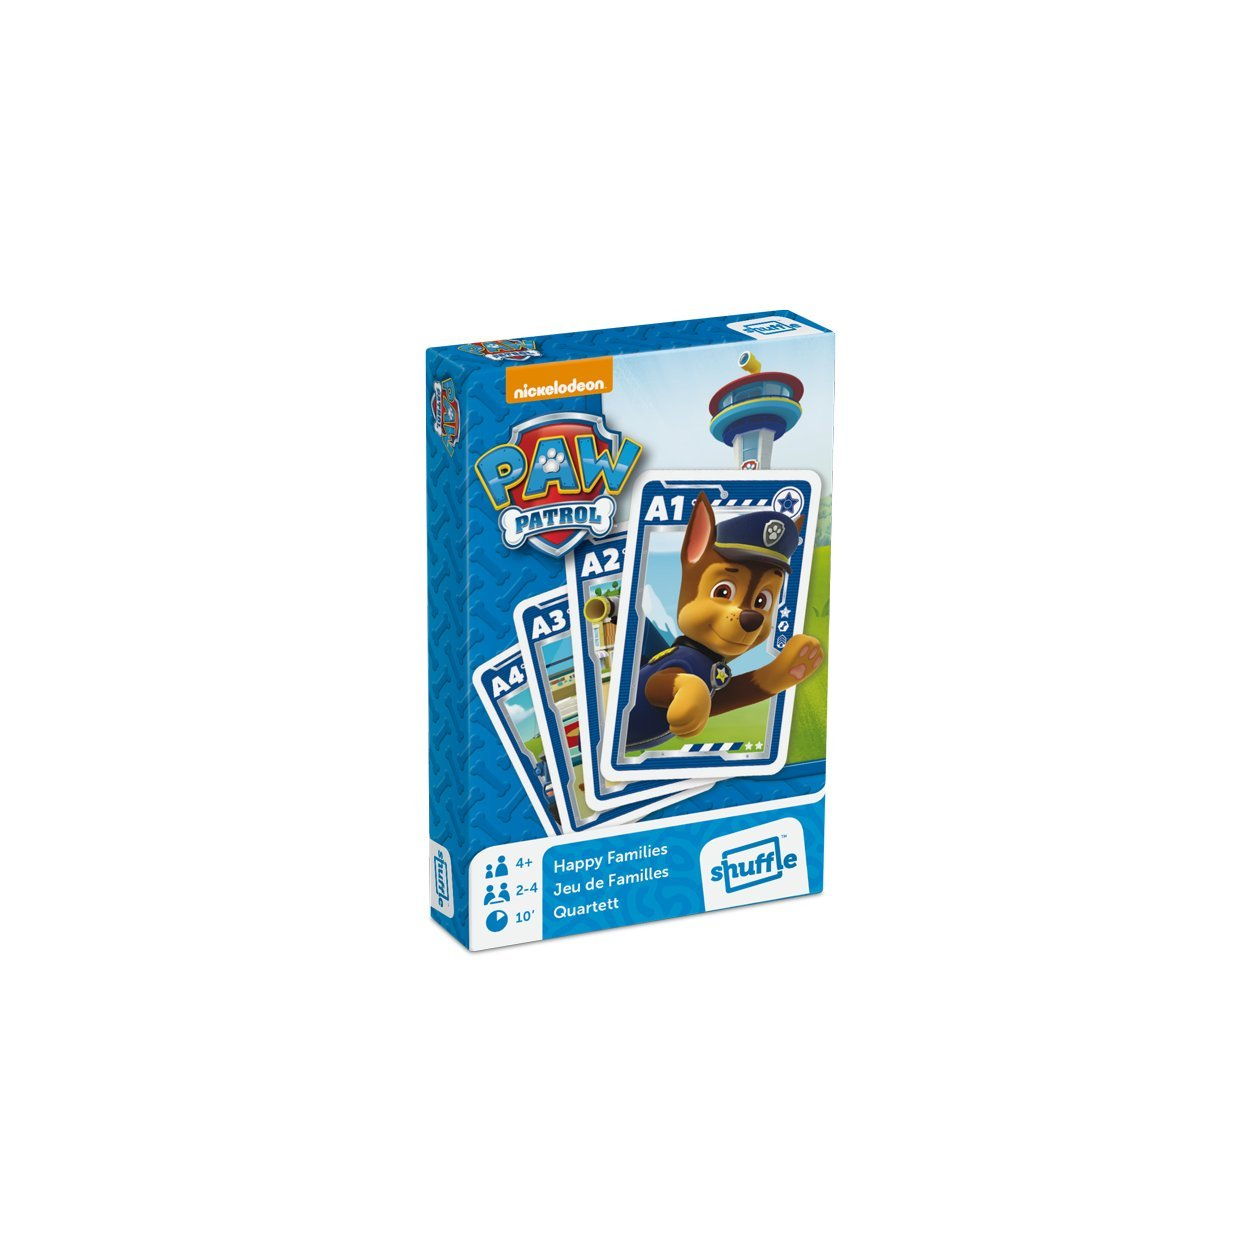 Ass Altenburger 22583134 - Paw Patrol - Quartett, Kartenspiel 108332924